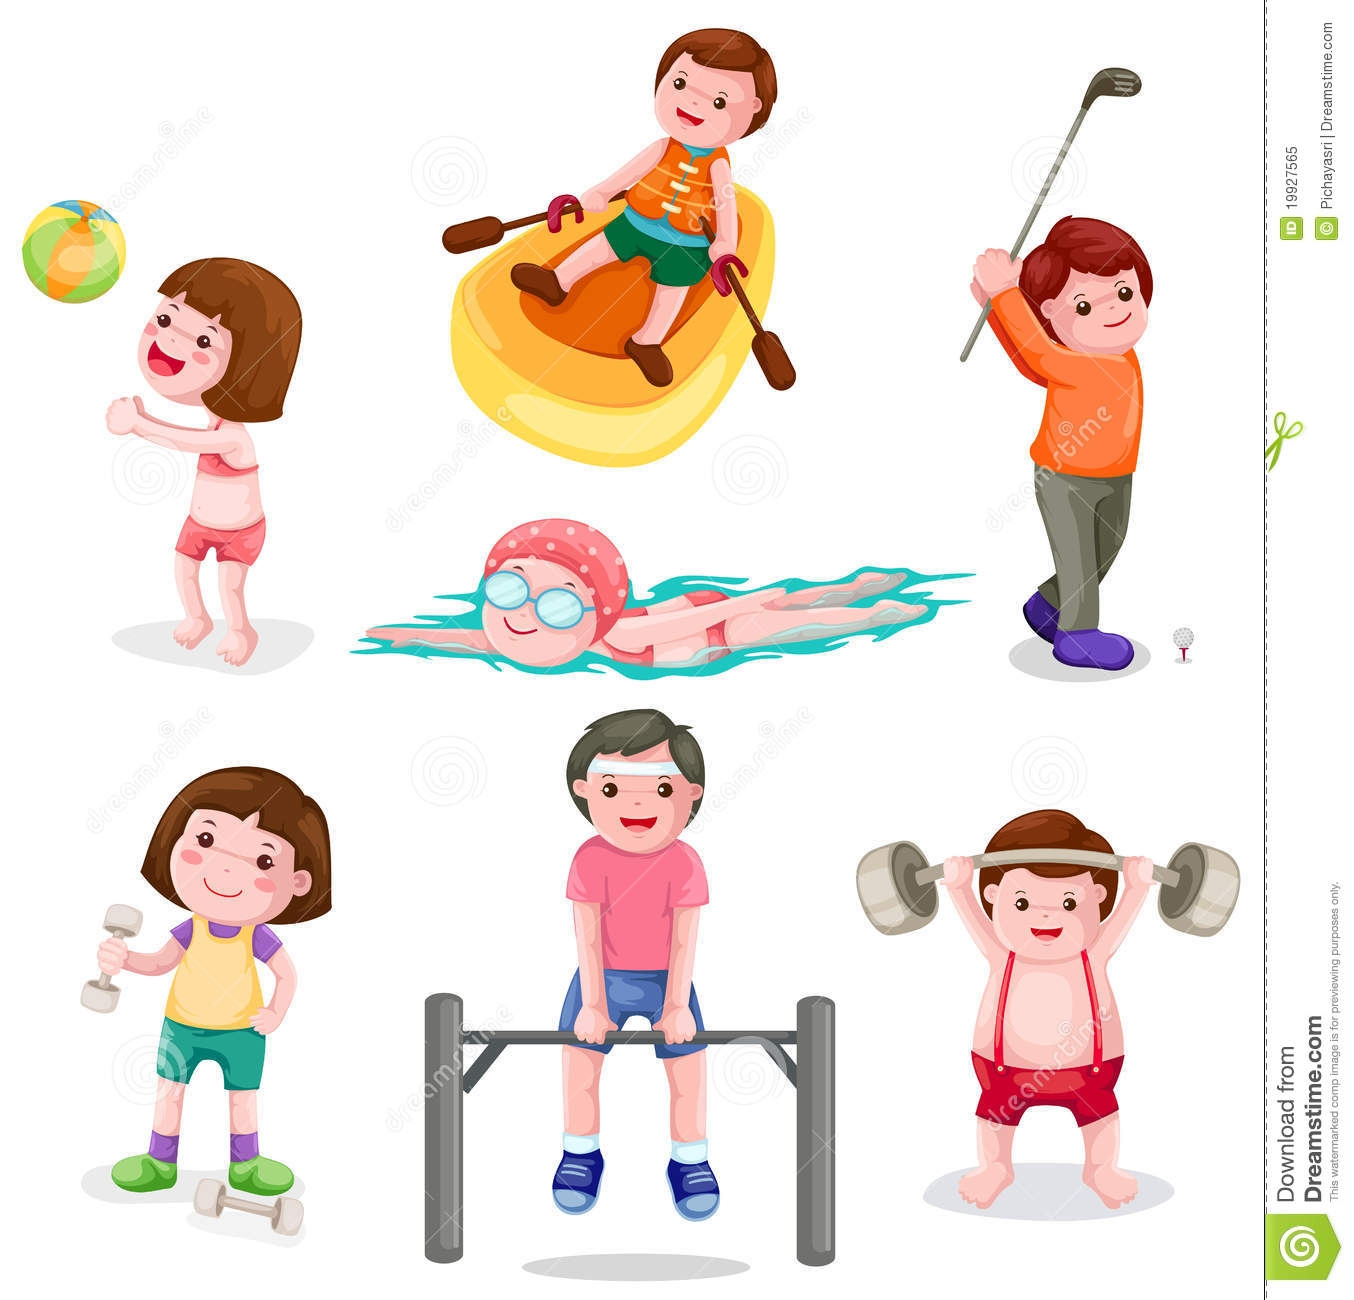 Physical Activity Images.